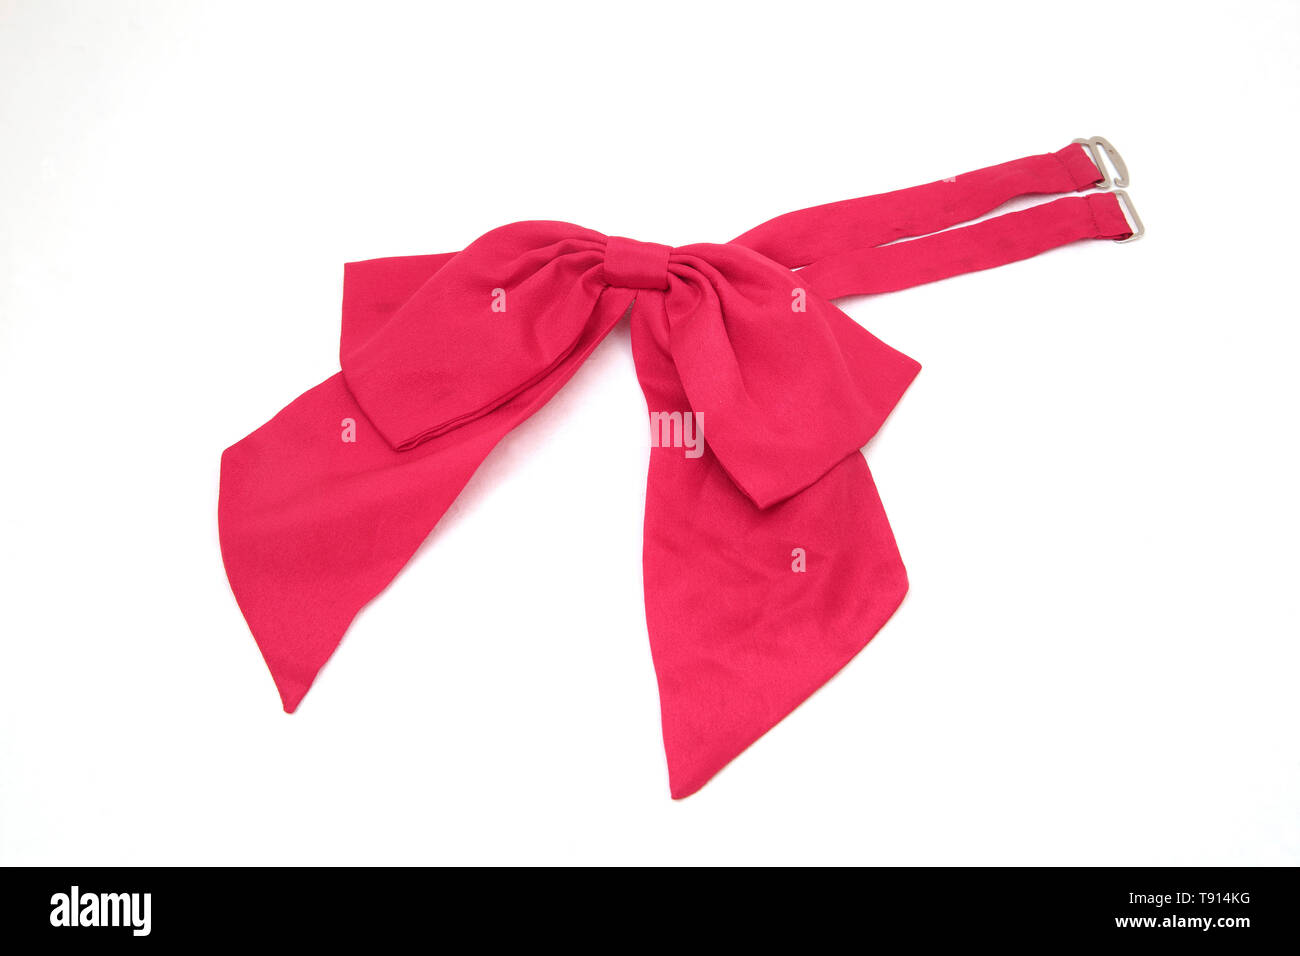 Red Bow Tie - Stock Image